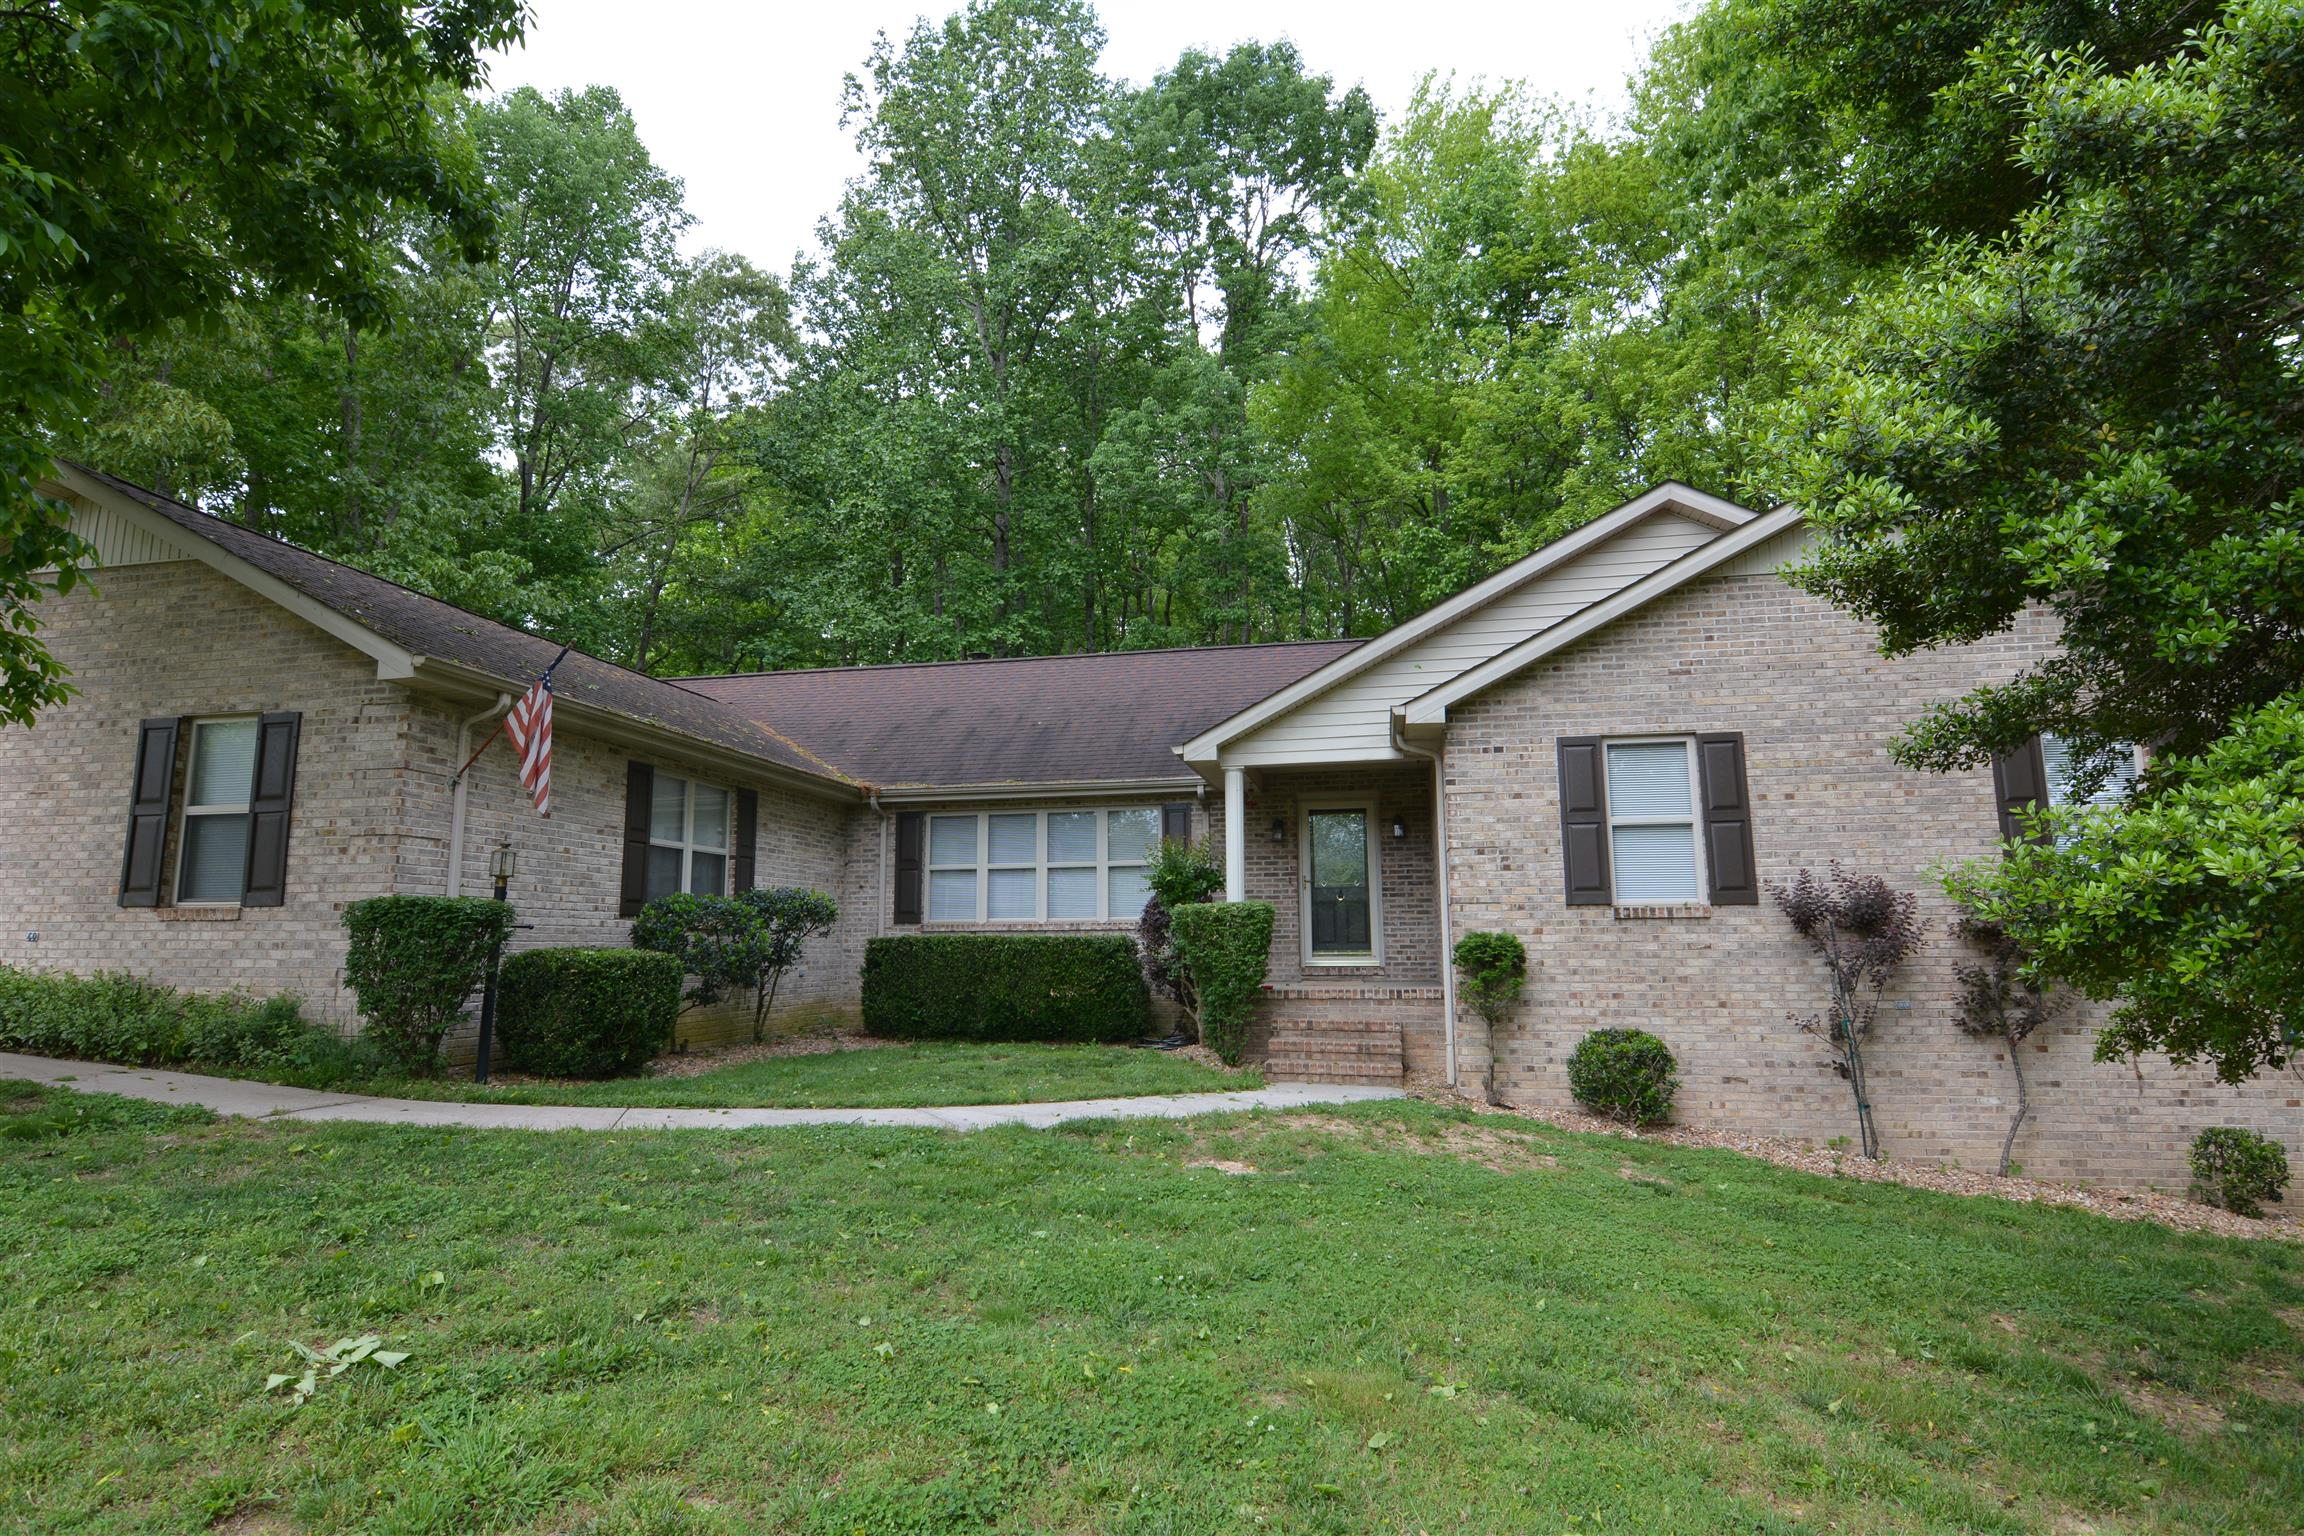 115 Cooks View Rd, Lynchburg, TN 37352 - Lynchburg, TN real estate listing